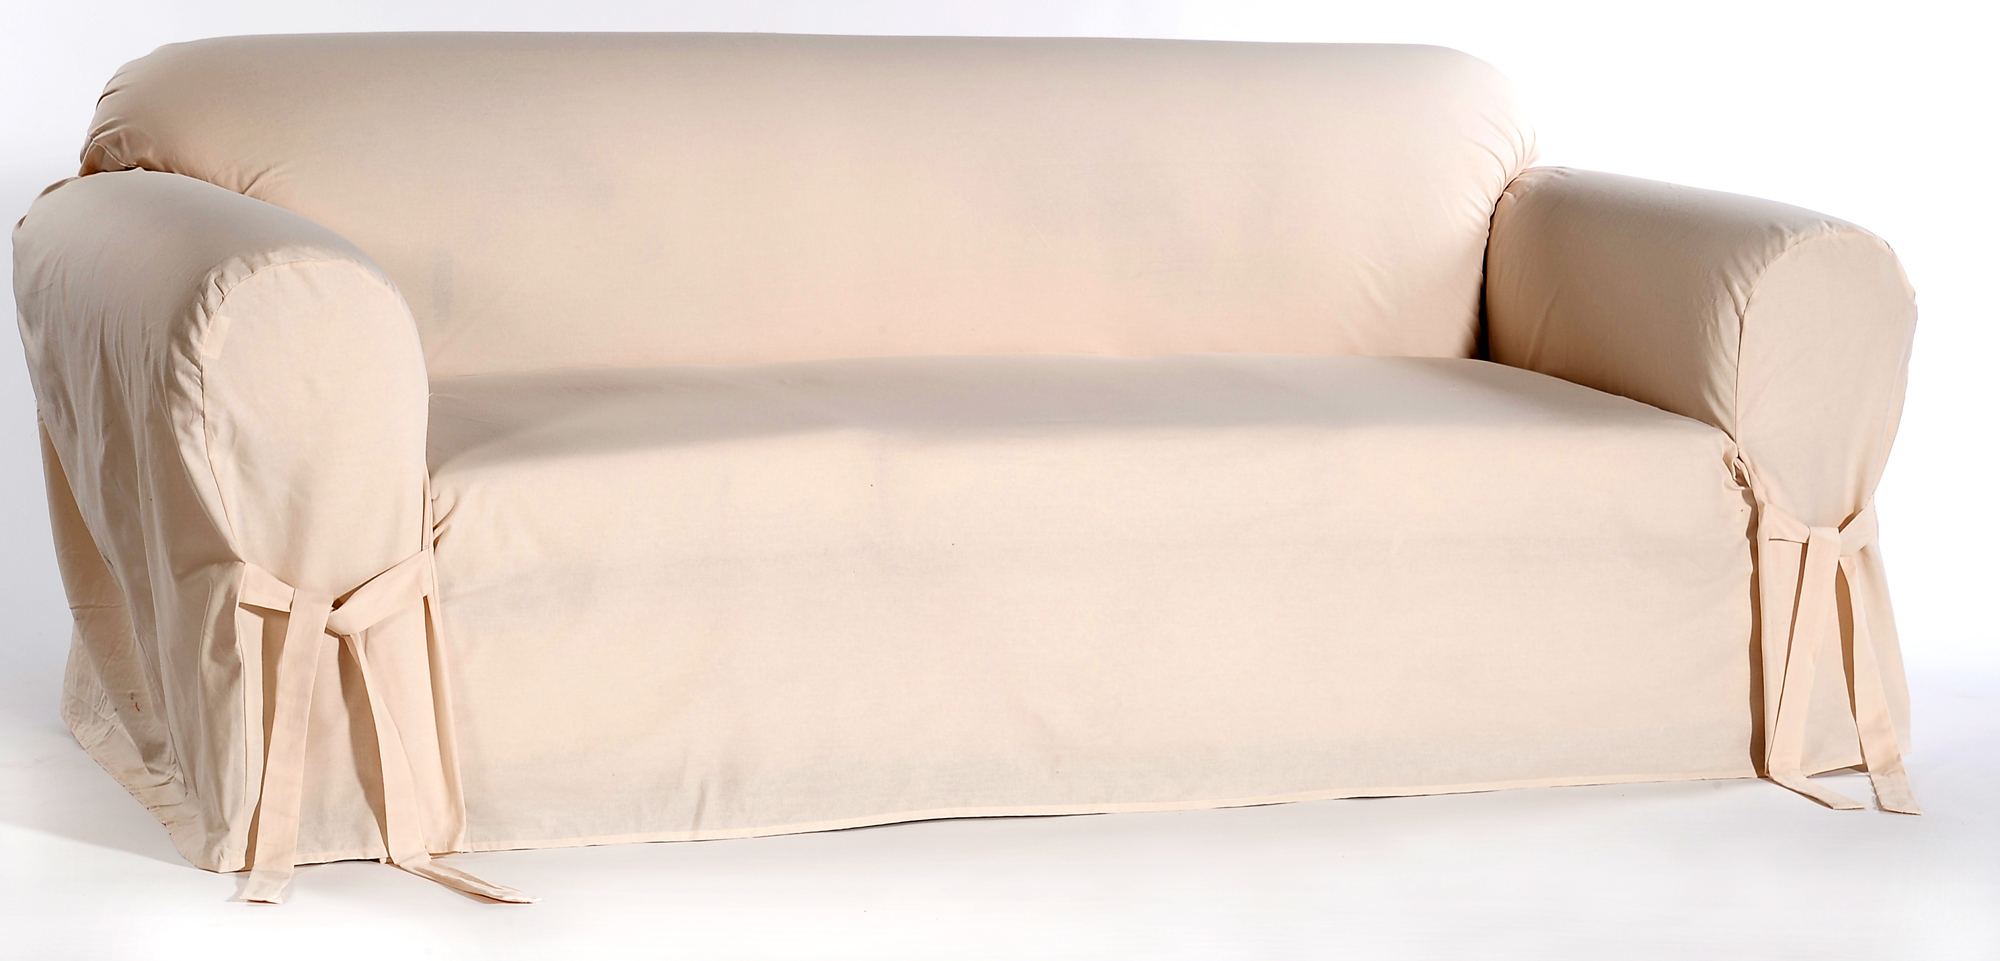 durham one piece sofa slipcover top rated sleeper 2017 classic slipcovers cotton duck loveseat